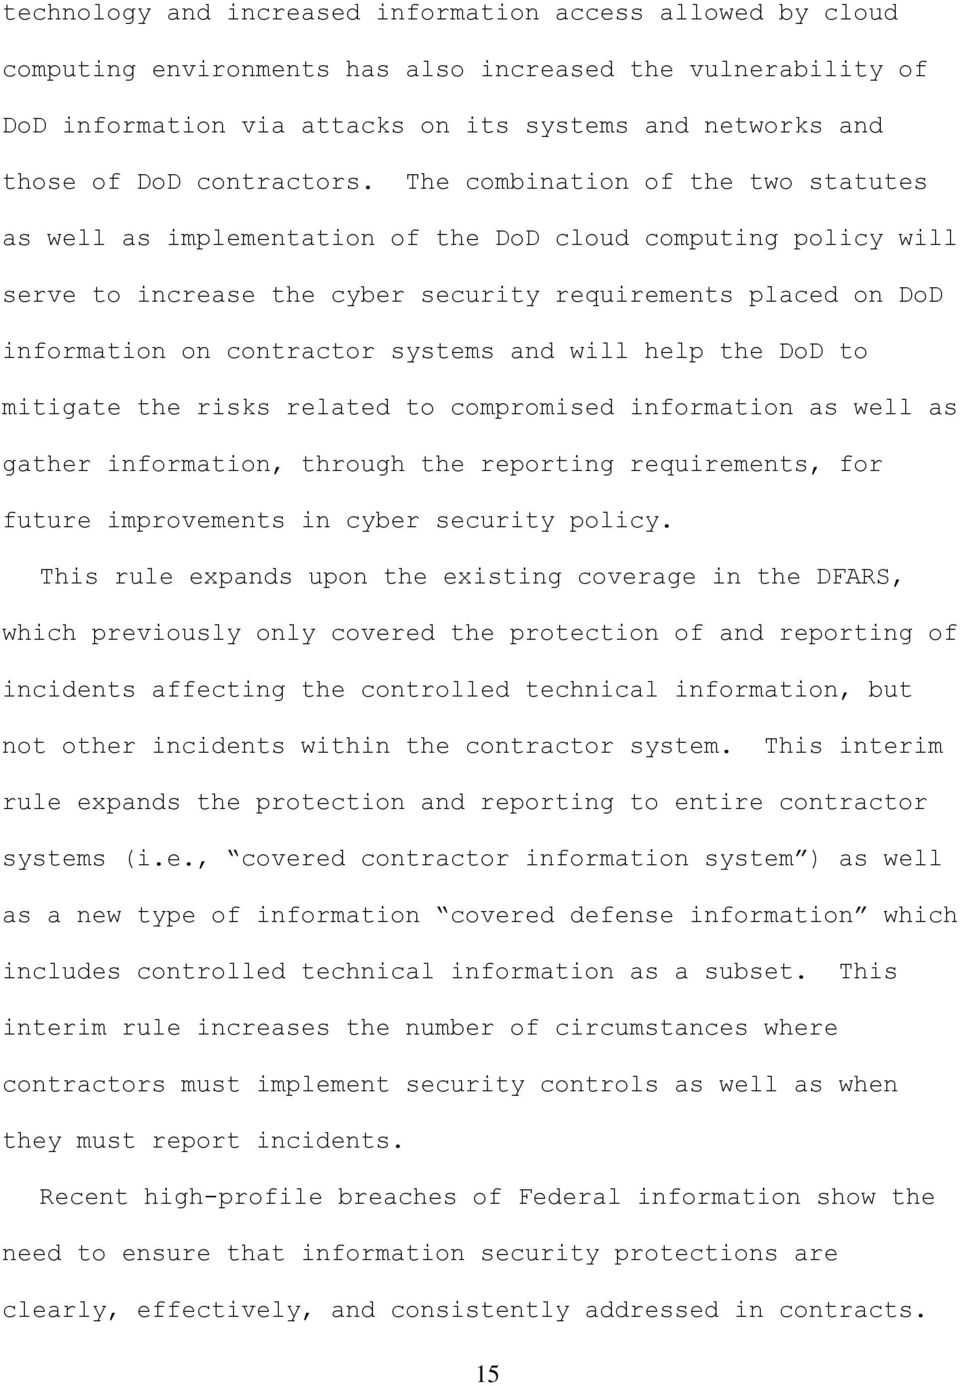 The combination of the two statutes as well as implementation of the DoD cloud computing policy will serve to increase the cyber security requirements placed on DoD information on contractor systems